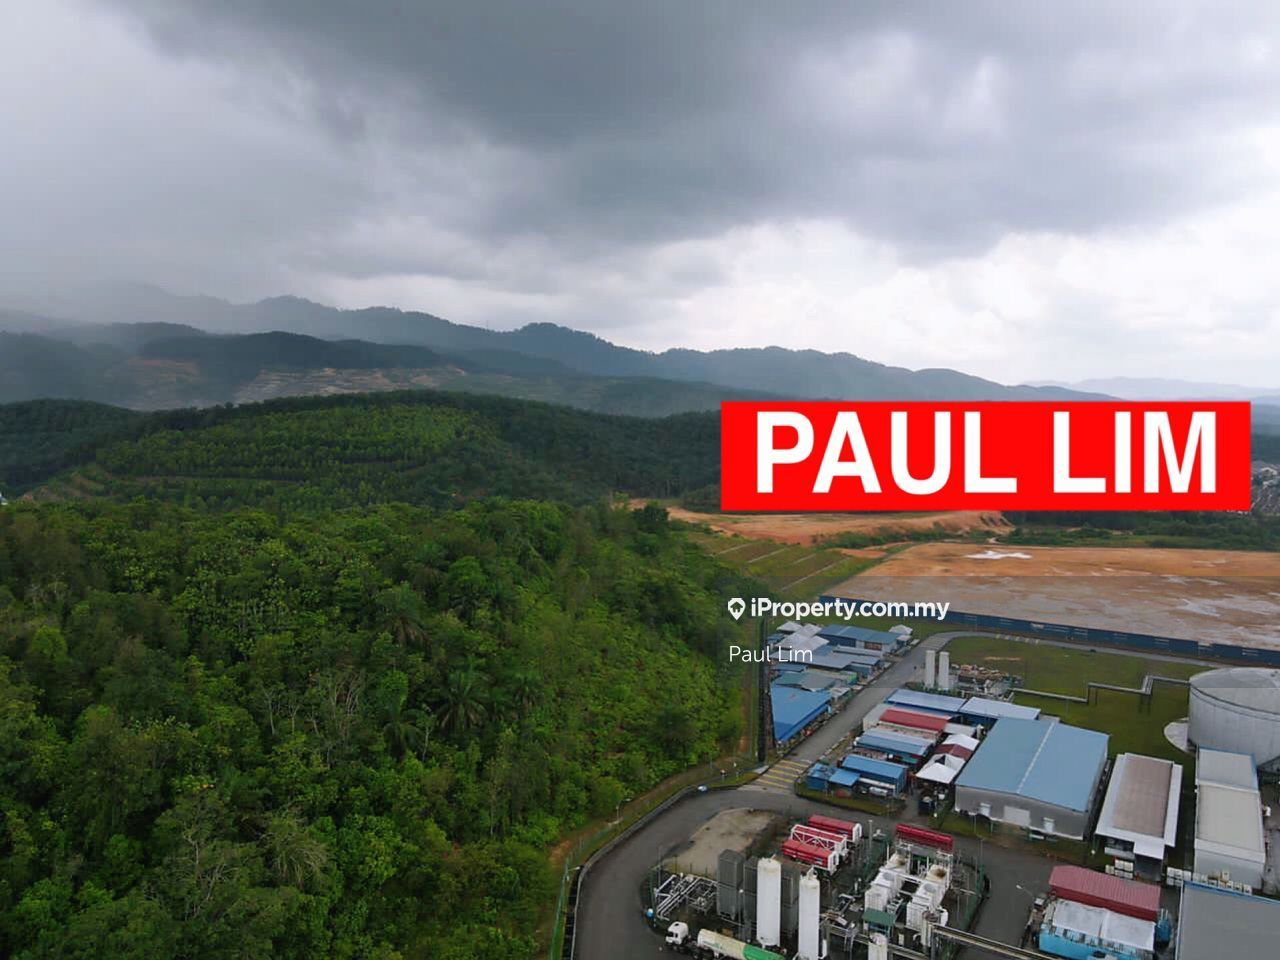 LAND SALE AT KULIM HIGH TEACH PHASE 5 SUNGAI ULAR 12.189ACRE INDUSTRIAL ZONING, Kulim